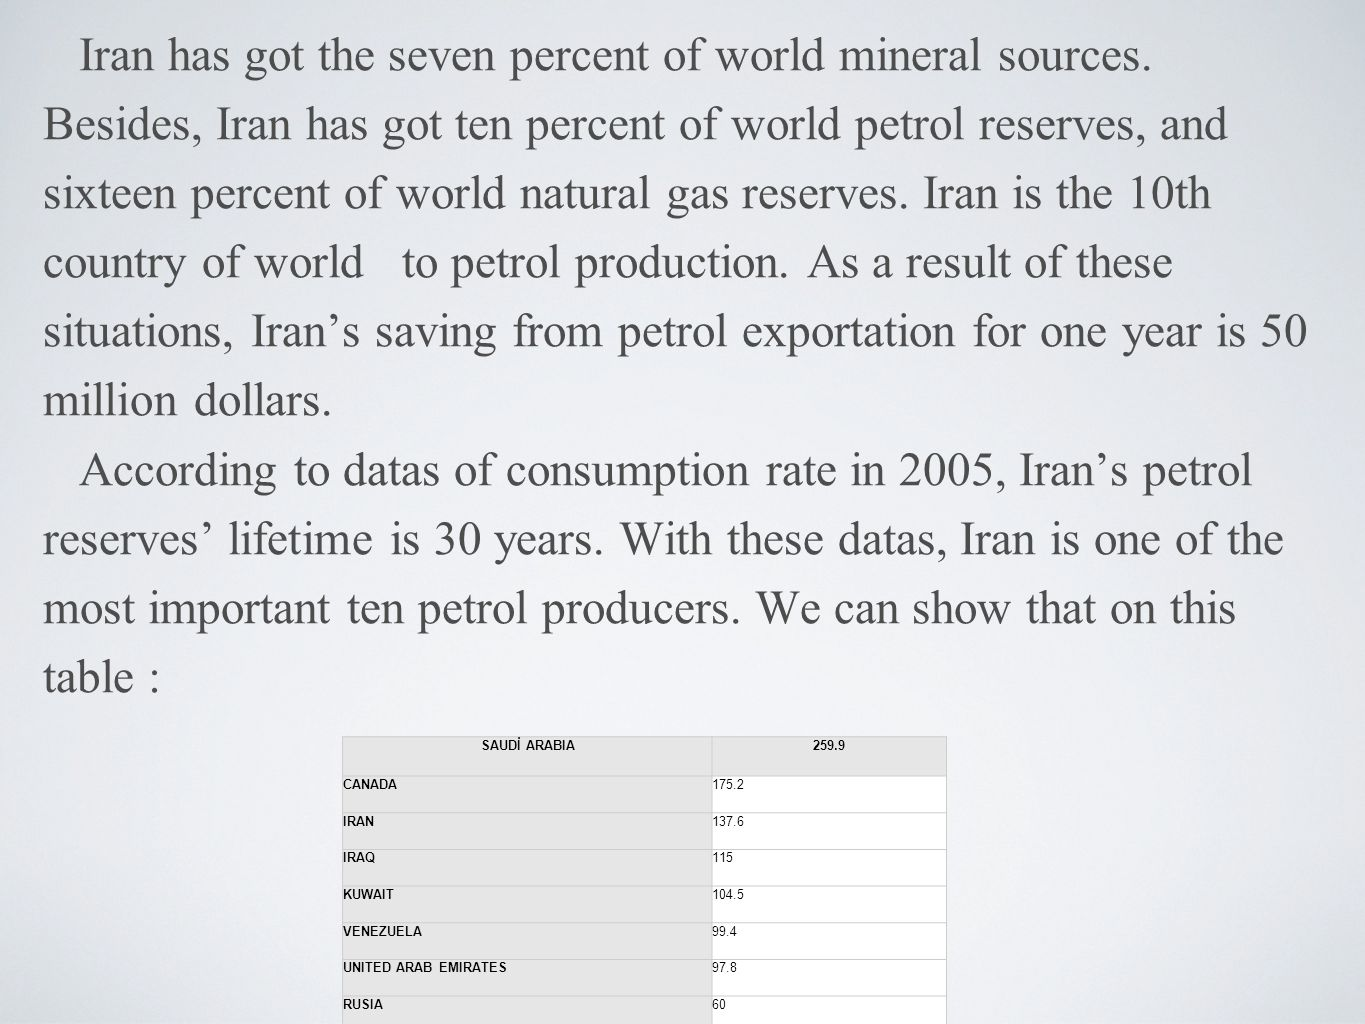 Iran has got the seven percent of world mineral sources.